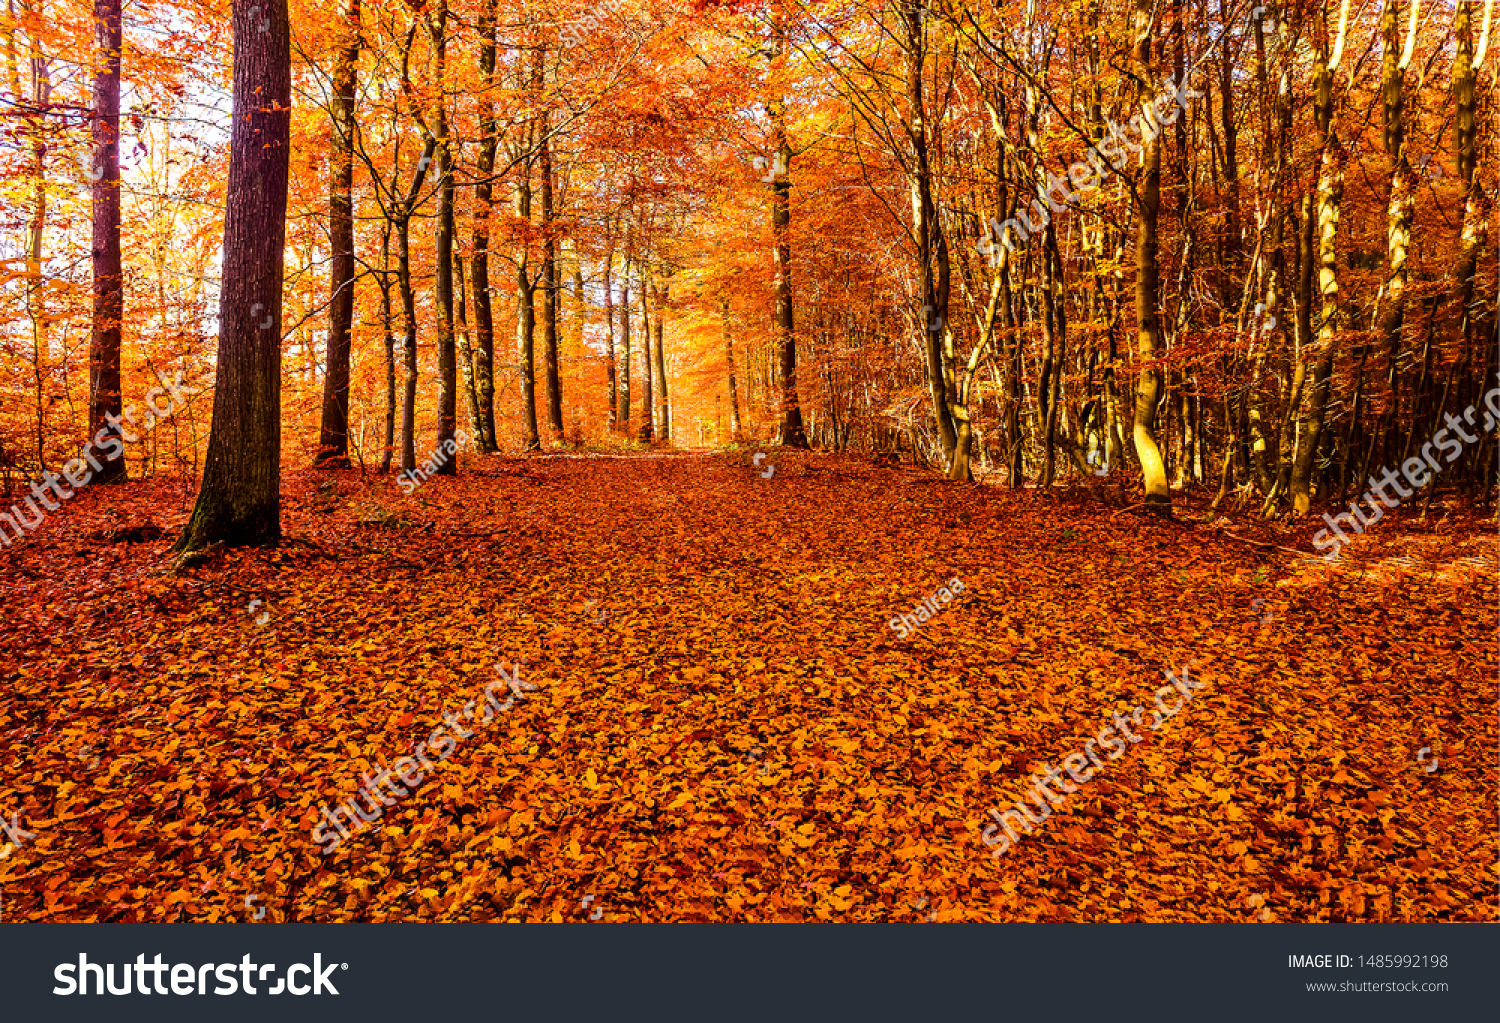 Autumn forest road leaves view. Autumn leaves ground. Autumn forest road landscape. Autumn leaves road view #1485992198